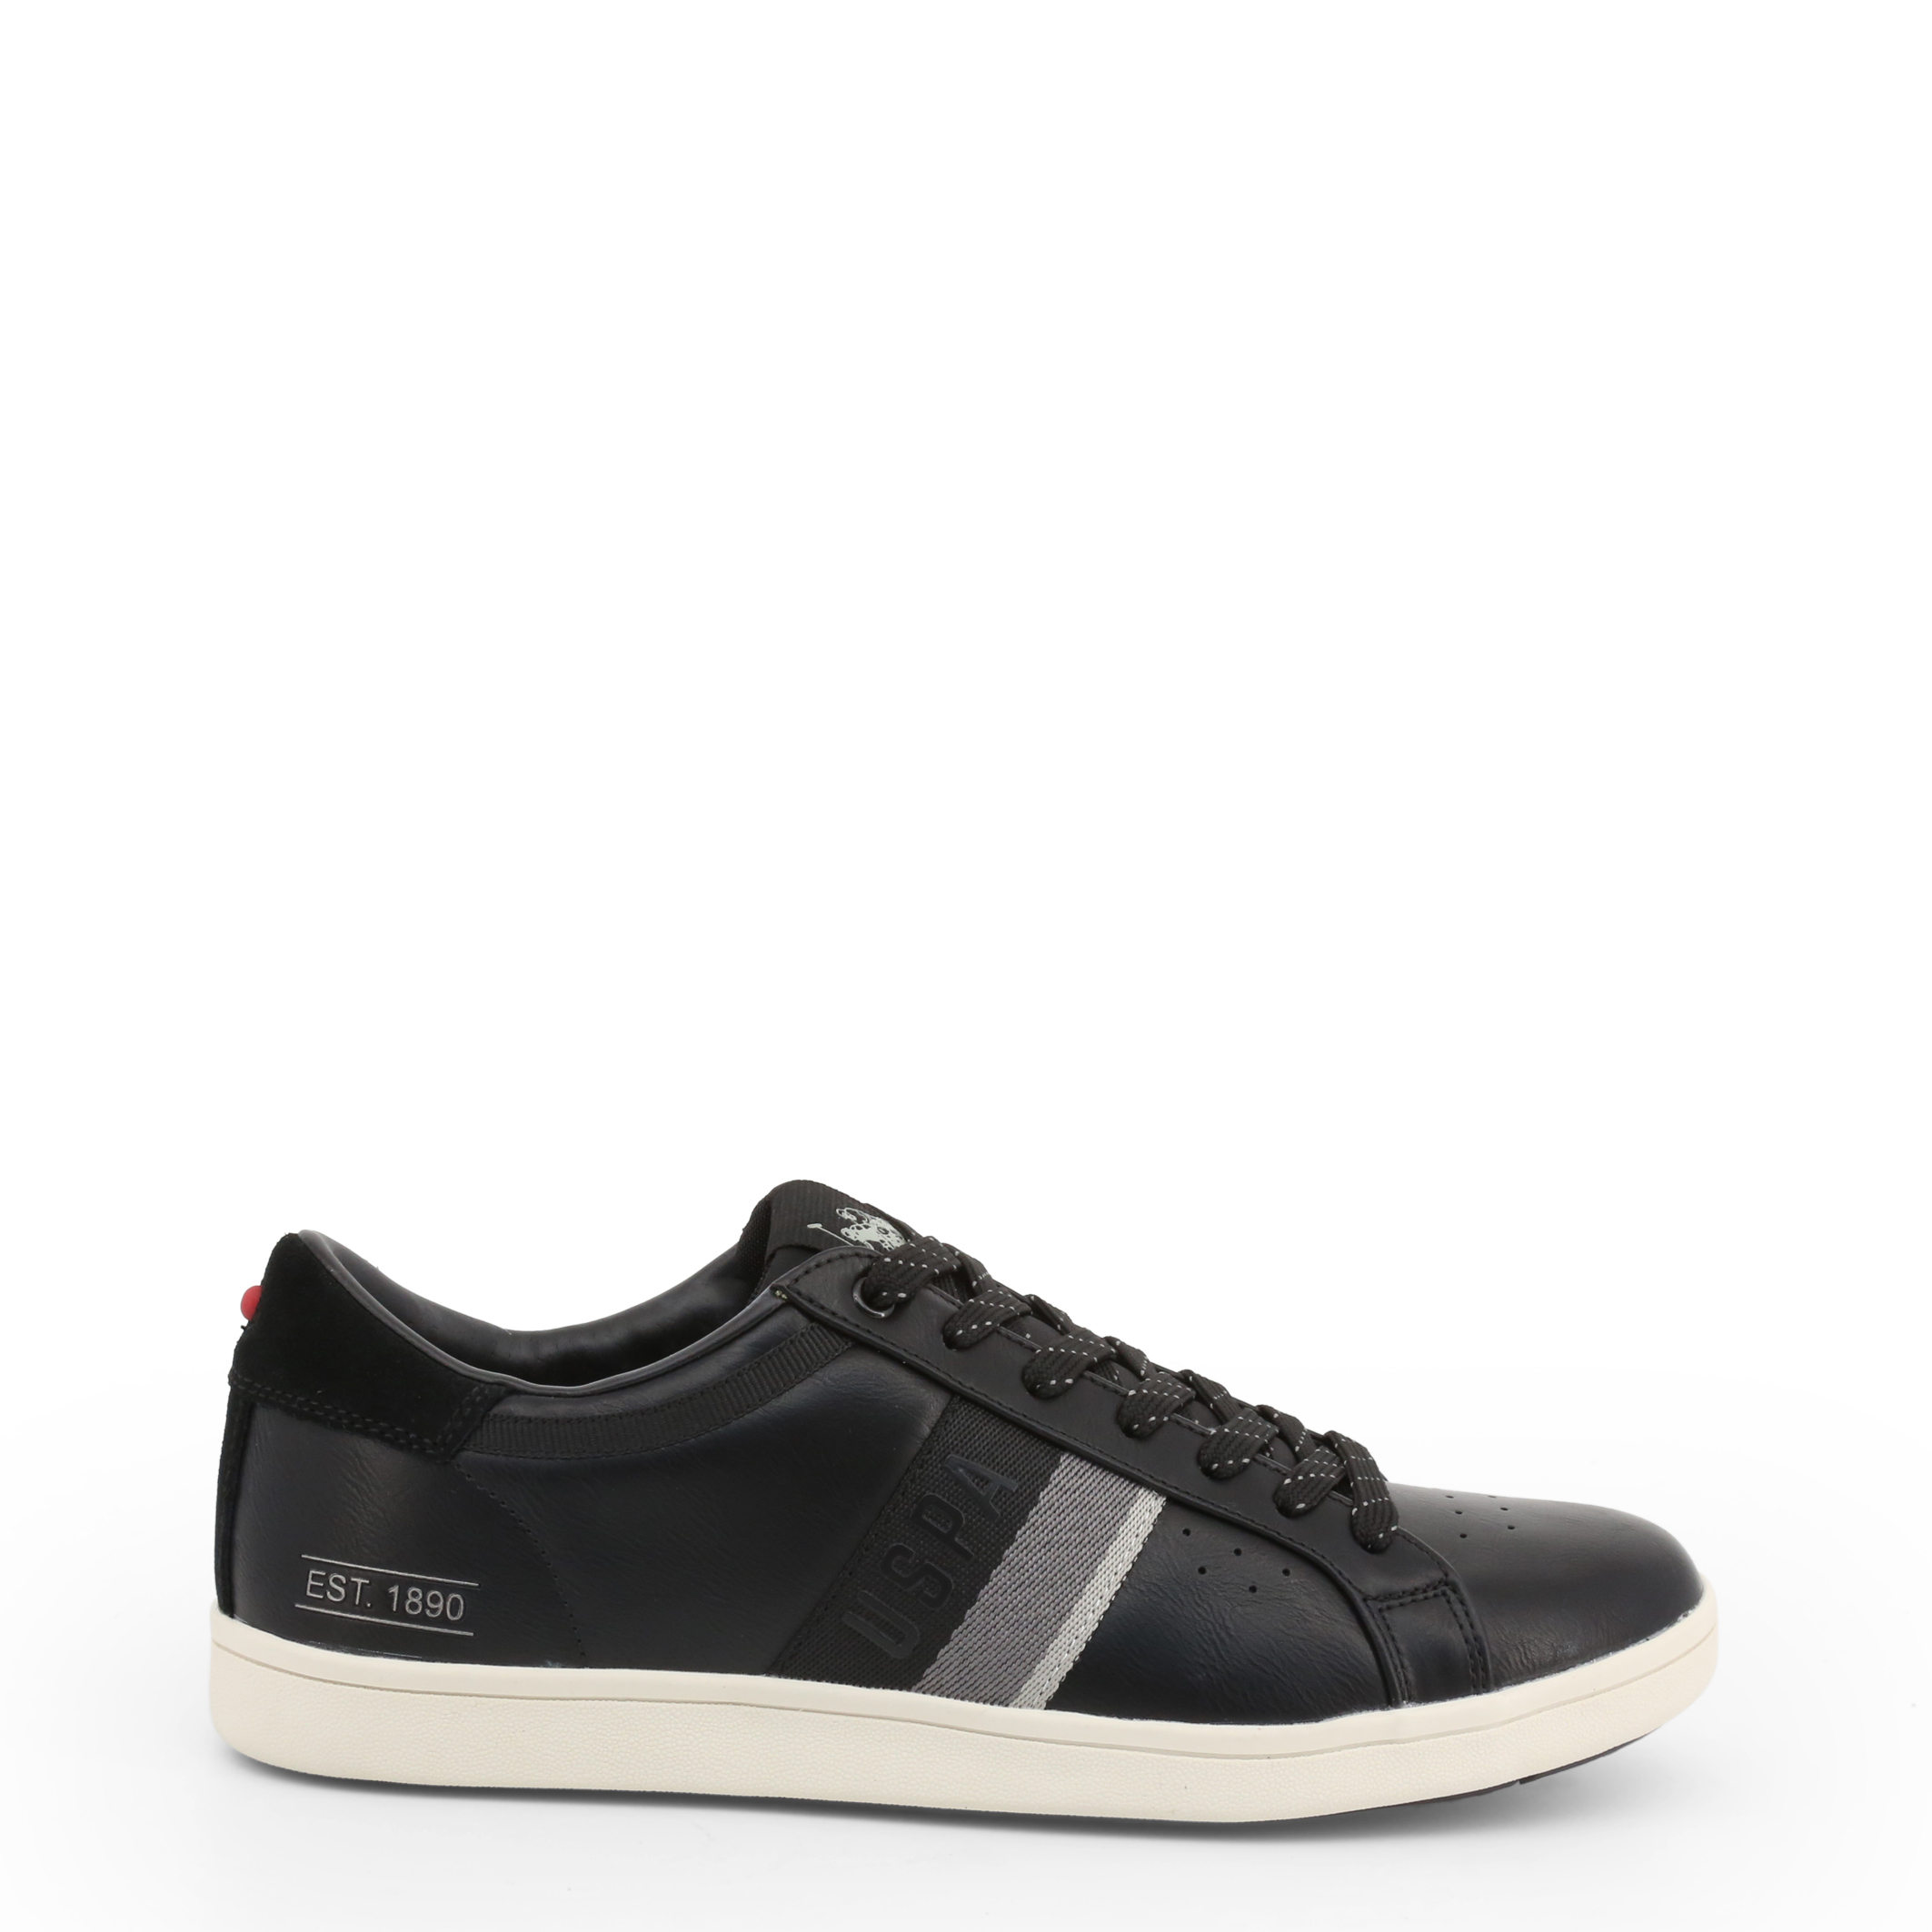 Chaussures de ville  U.S. Polo Assn. JARED4052S9_Y1_BLK black